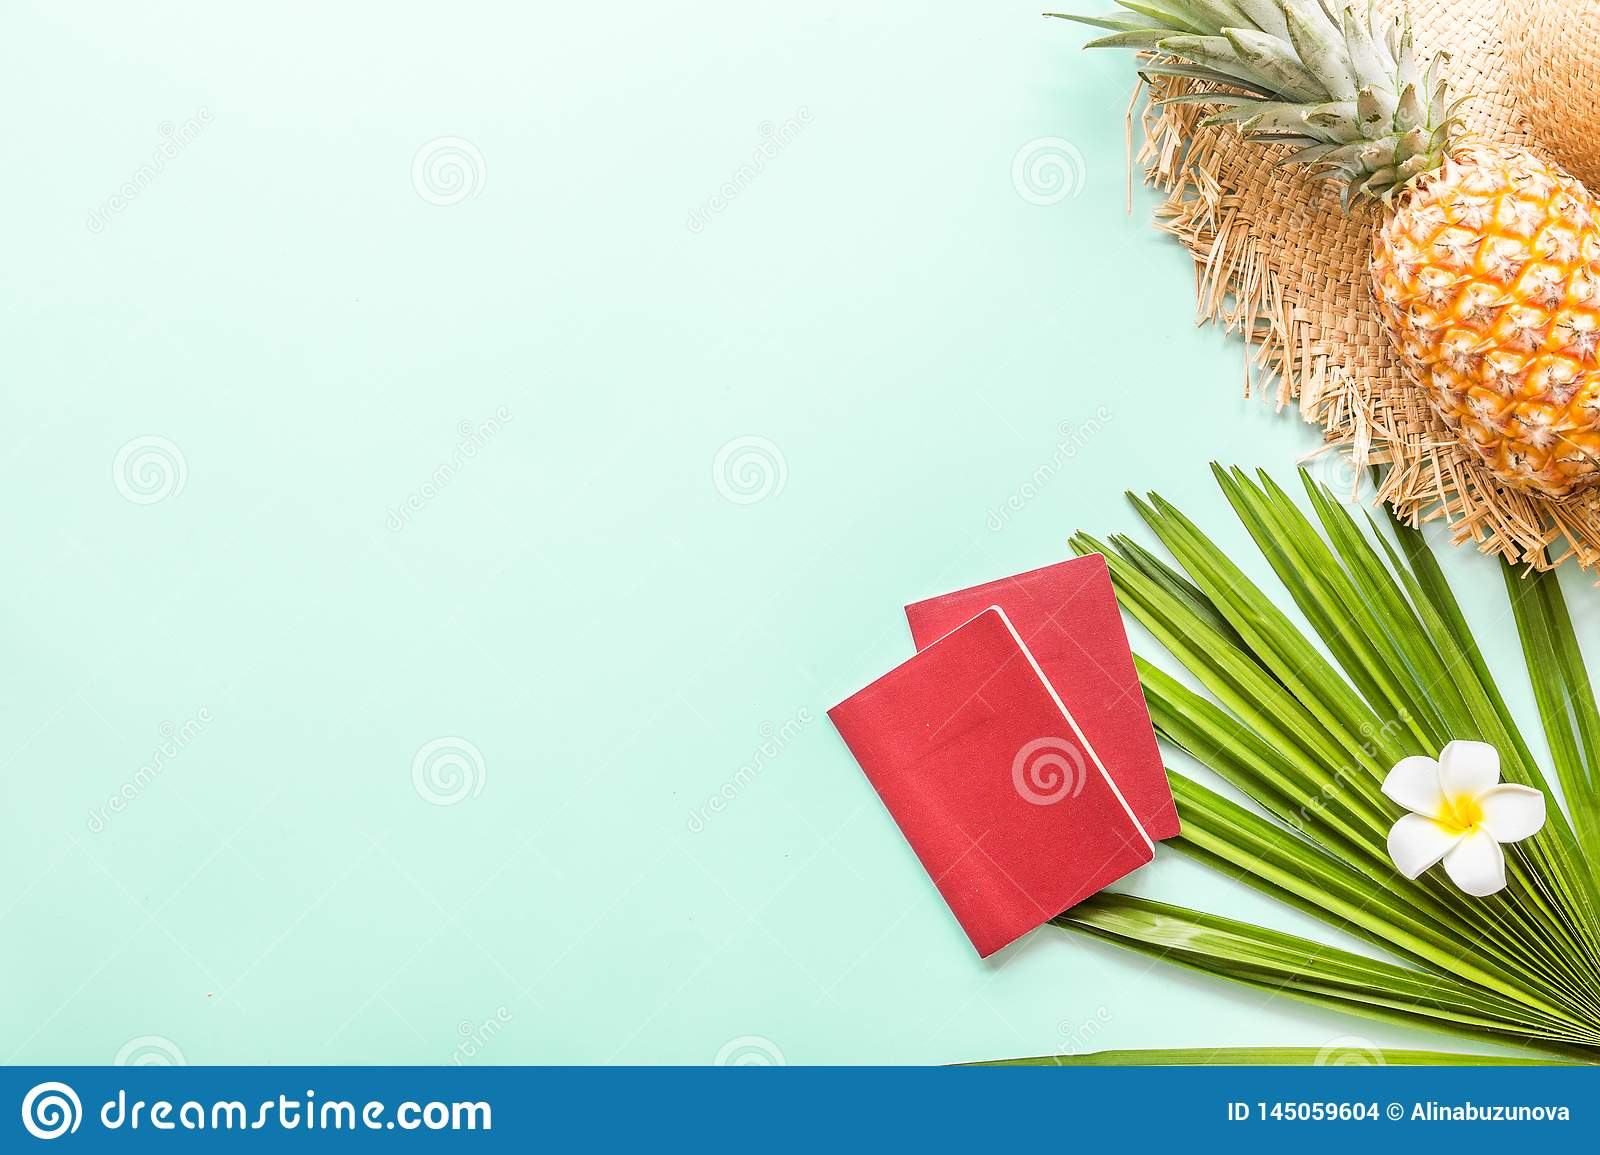 Travel flat lay items: fresh pineapple, tropical flower and palm leaf. Place for text. Top view. Summer concept